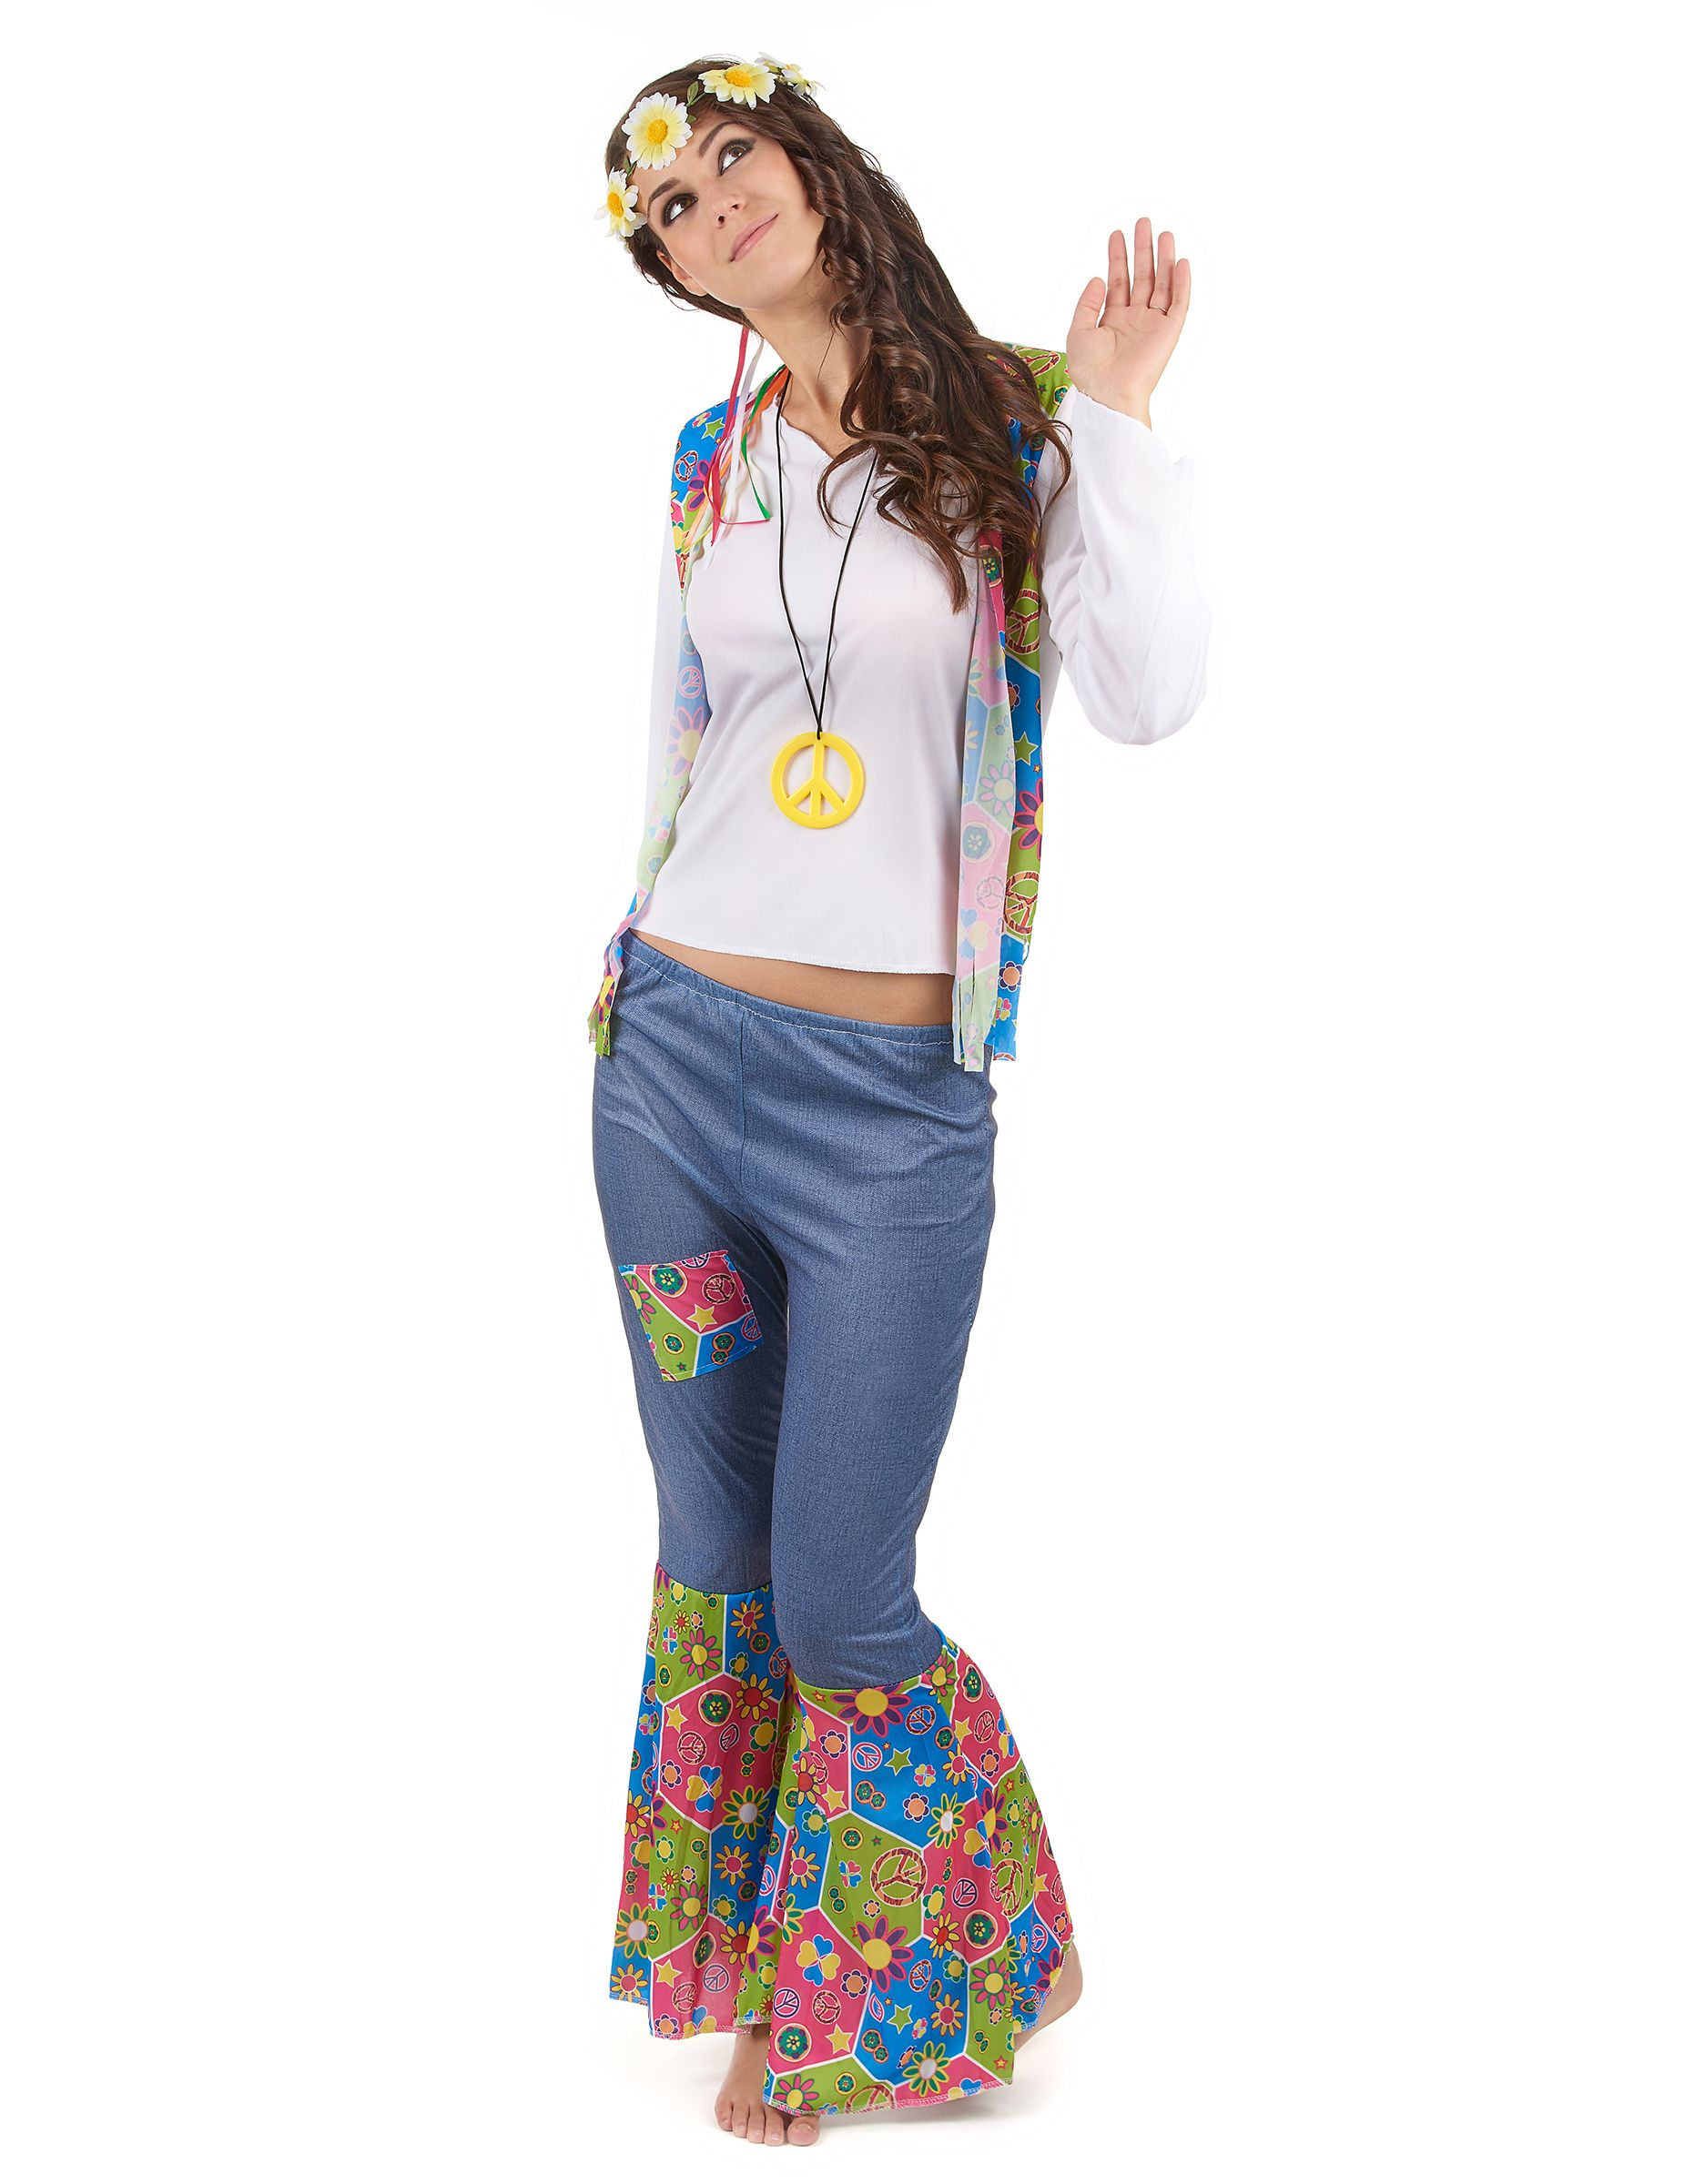 COST-W NEW with Halterneck Top S. Multi-Coloured Vintage Hippy 1970s Costume